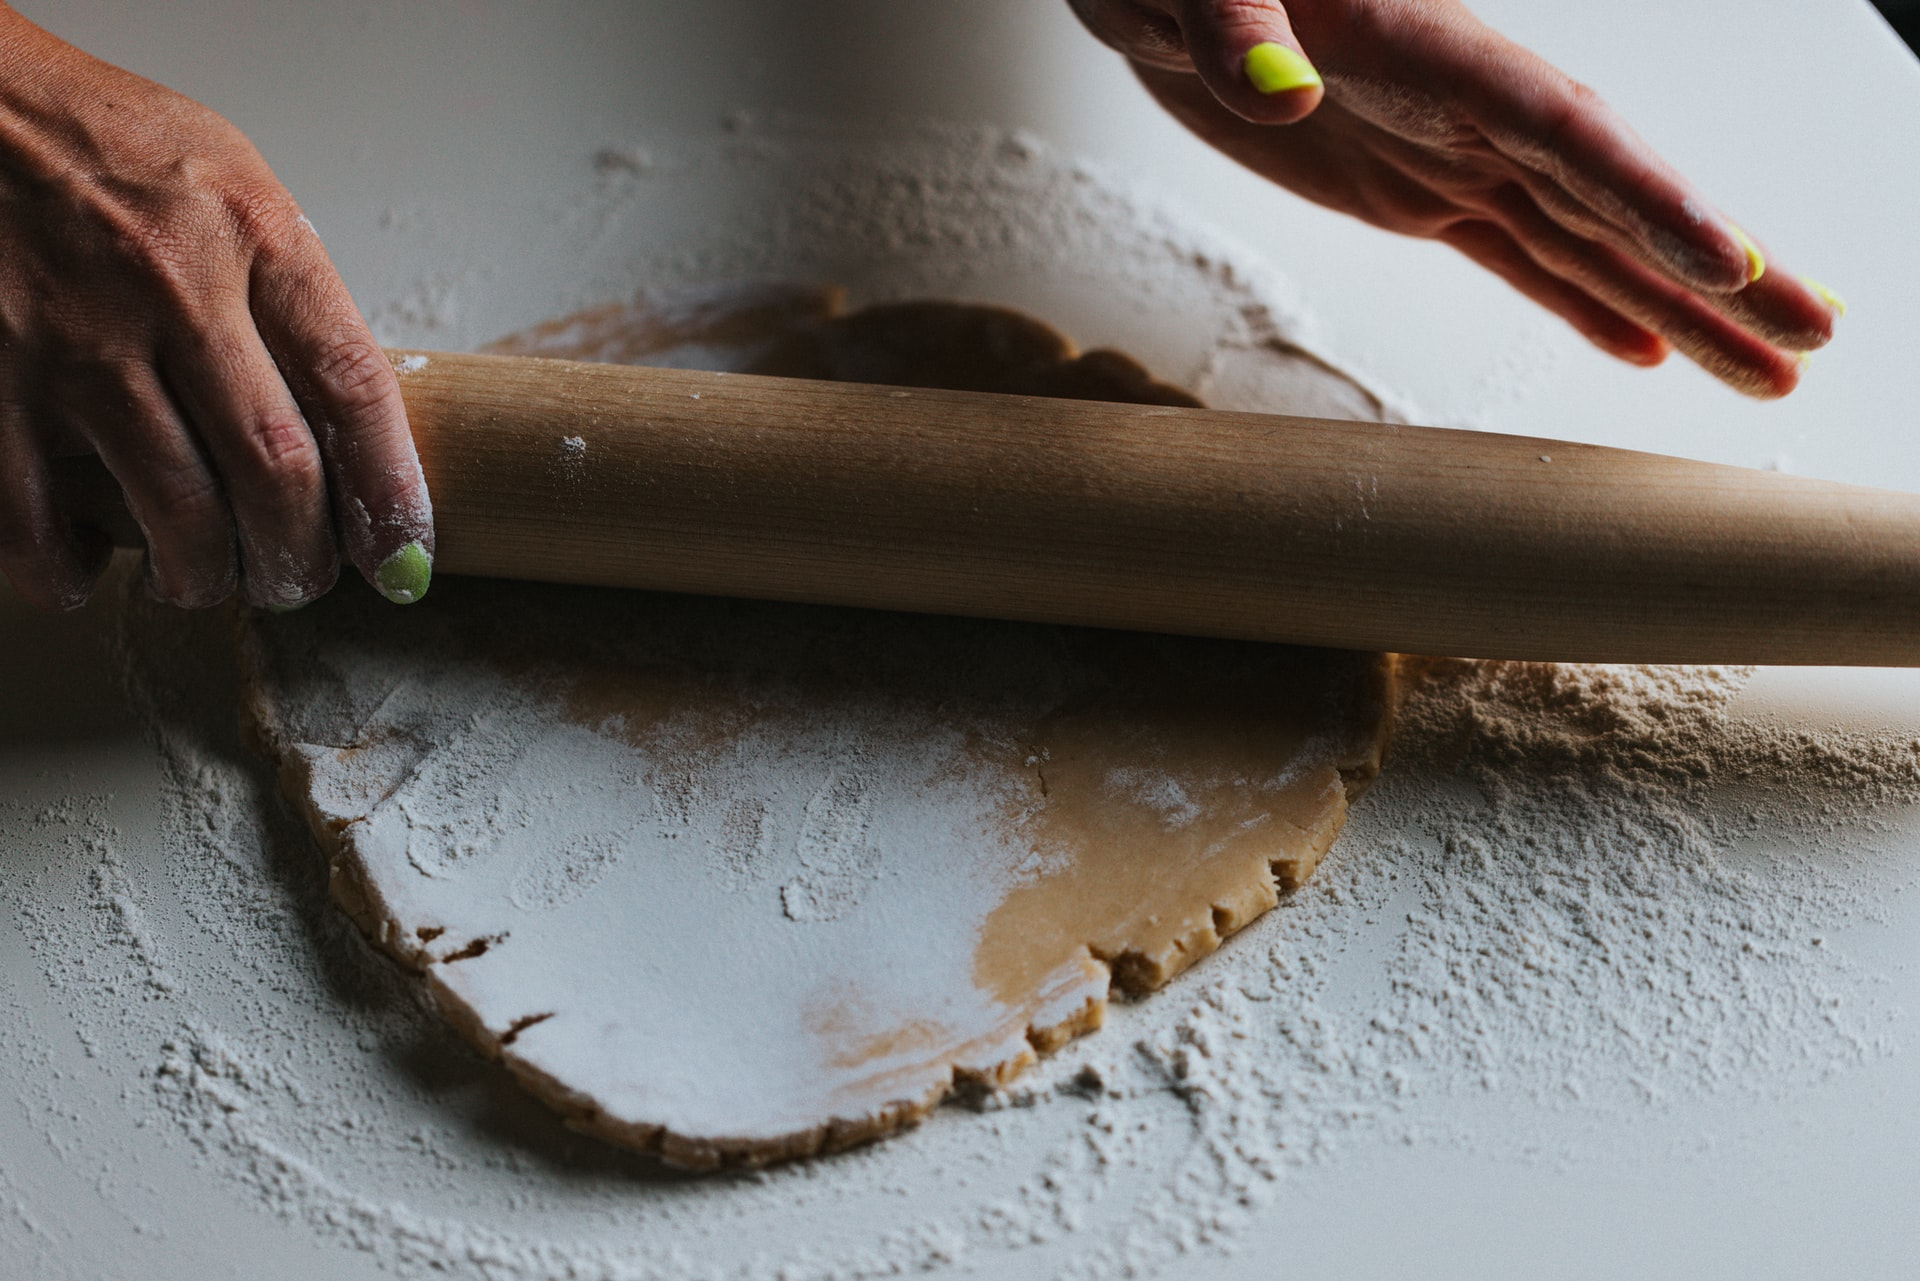 person using a rolling pin to bake